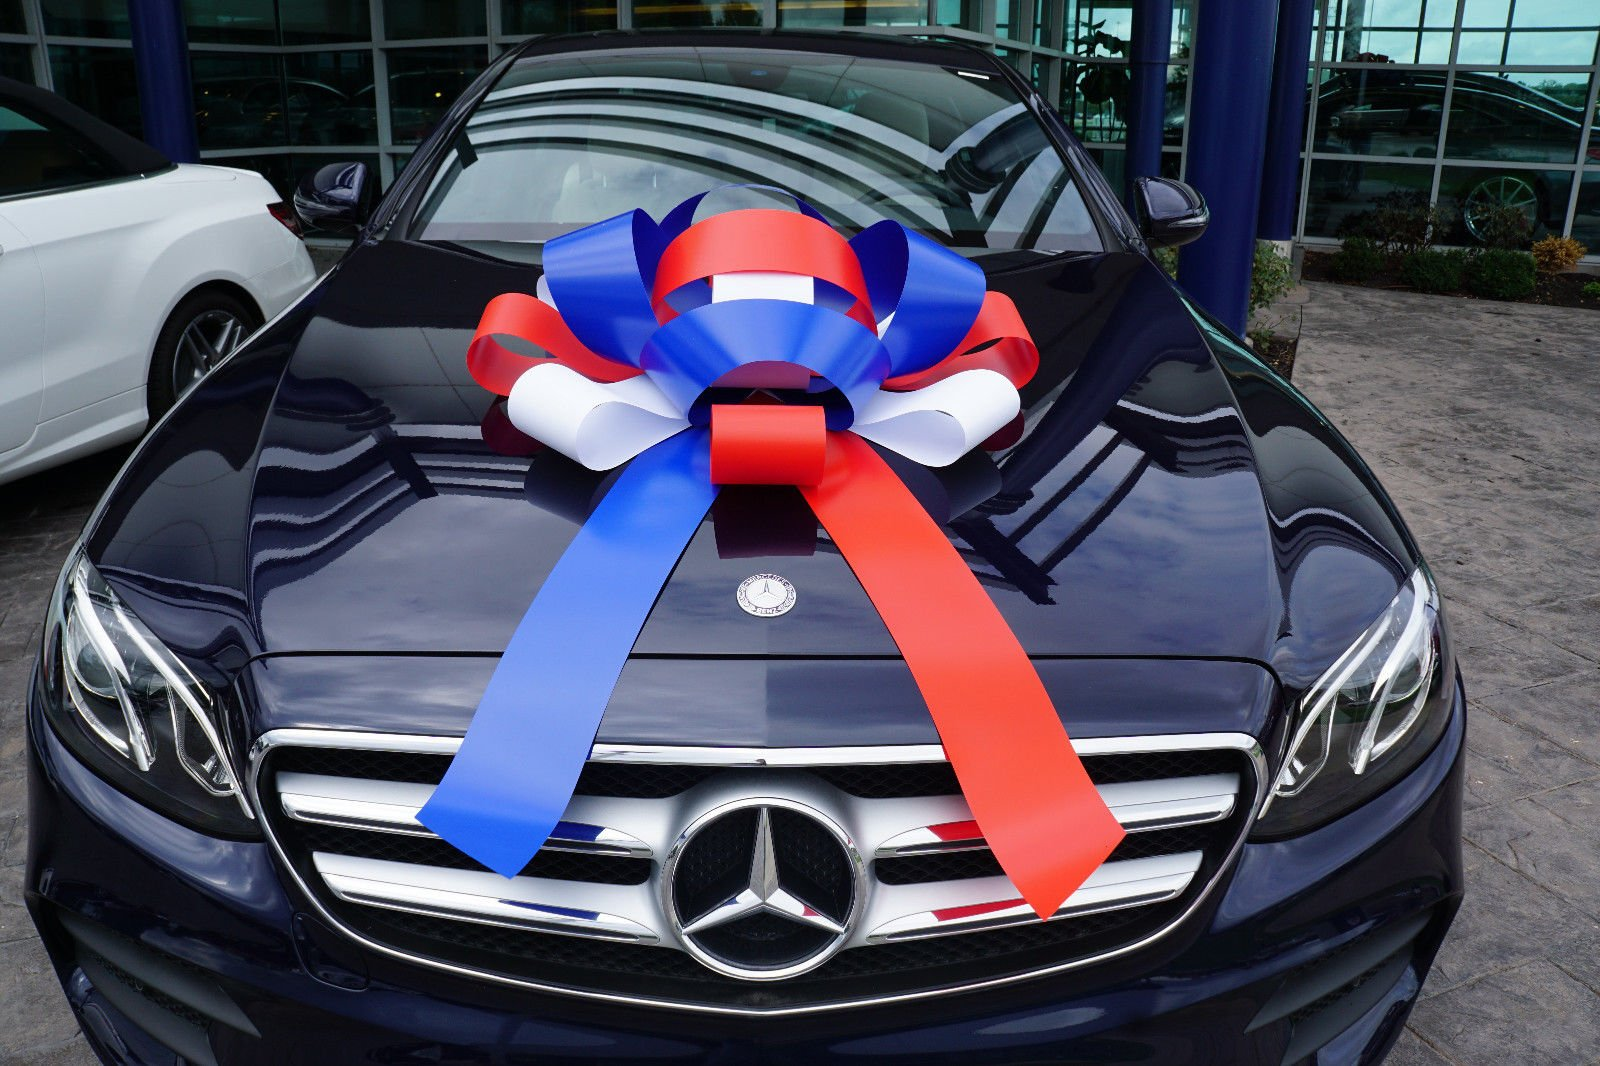 Eight24hours Big Car Bow Magnetic Back Vinyl No Scratch Large Gift Bow - Red White Blue